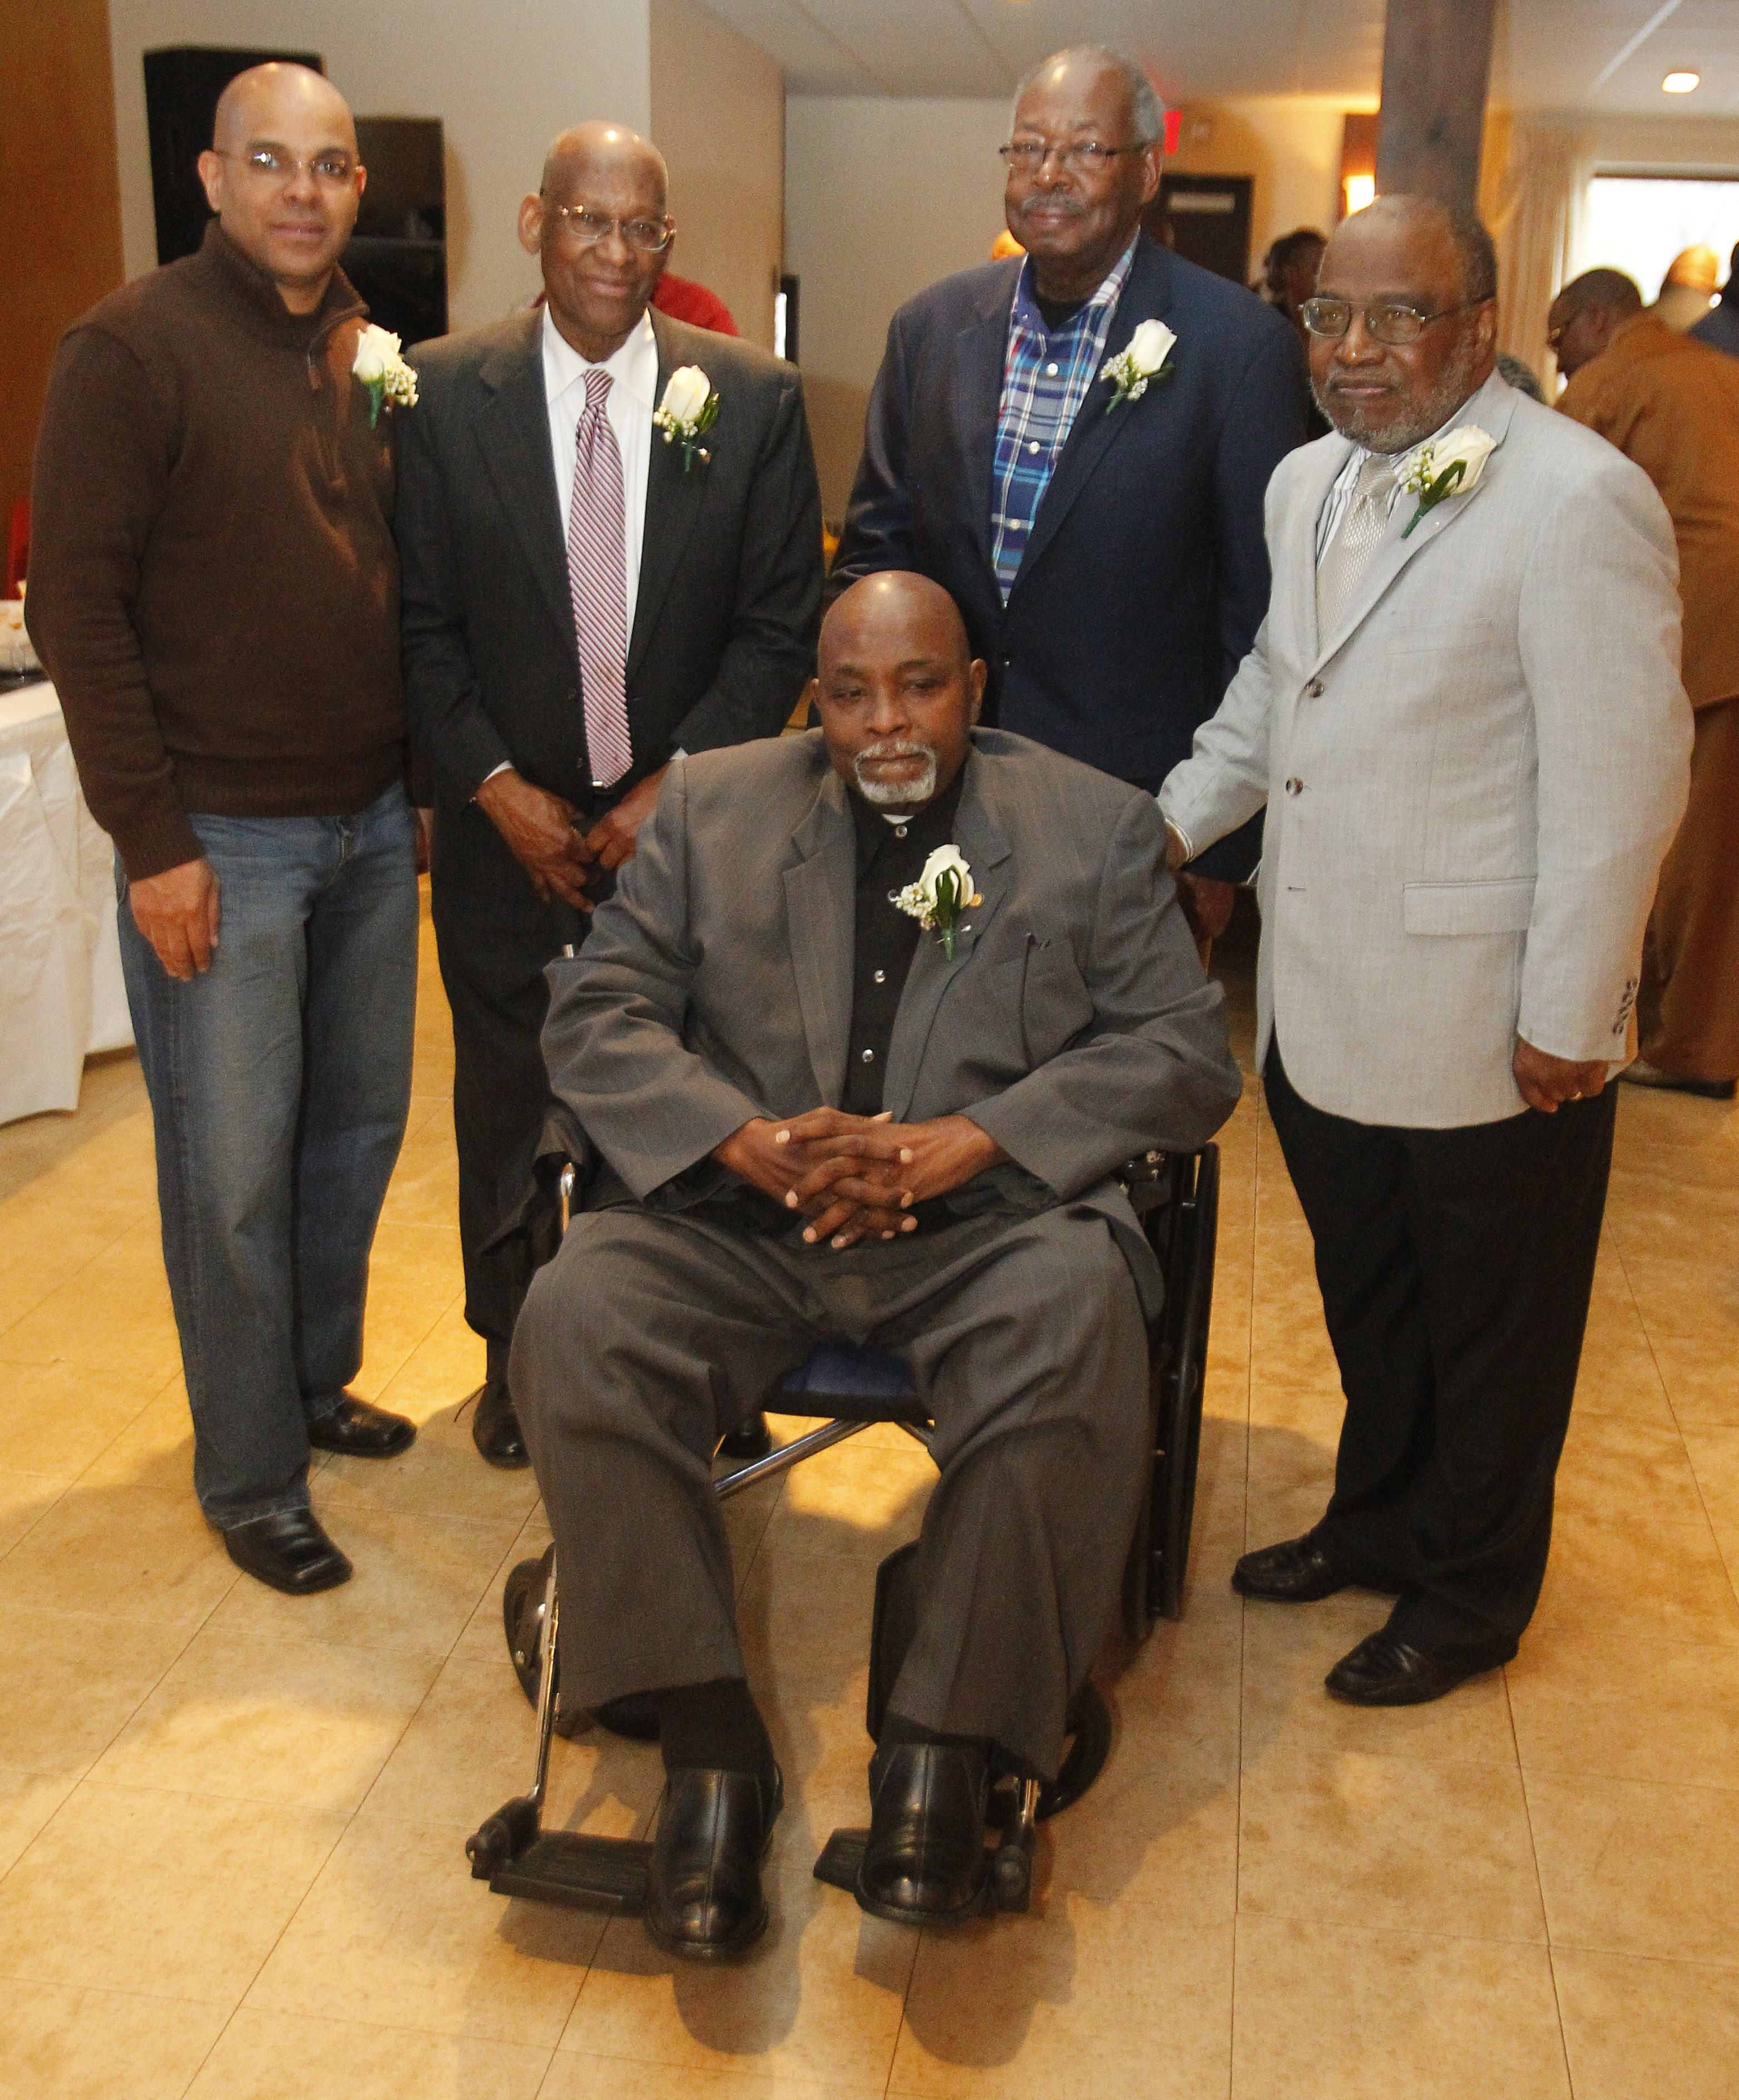 General Bass' son, Kevin, left, joined Ron Peoples, William House, Carl Johnson and the seated John Johnson on Saturday at a banquet in St. George's Hall honoring Neighborhood House Association.